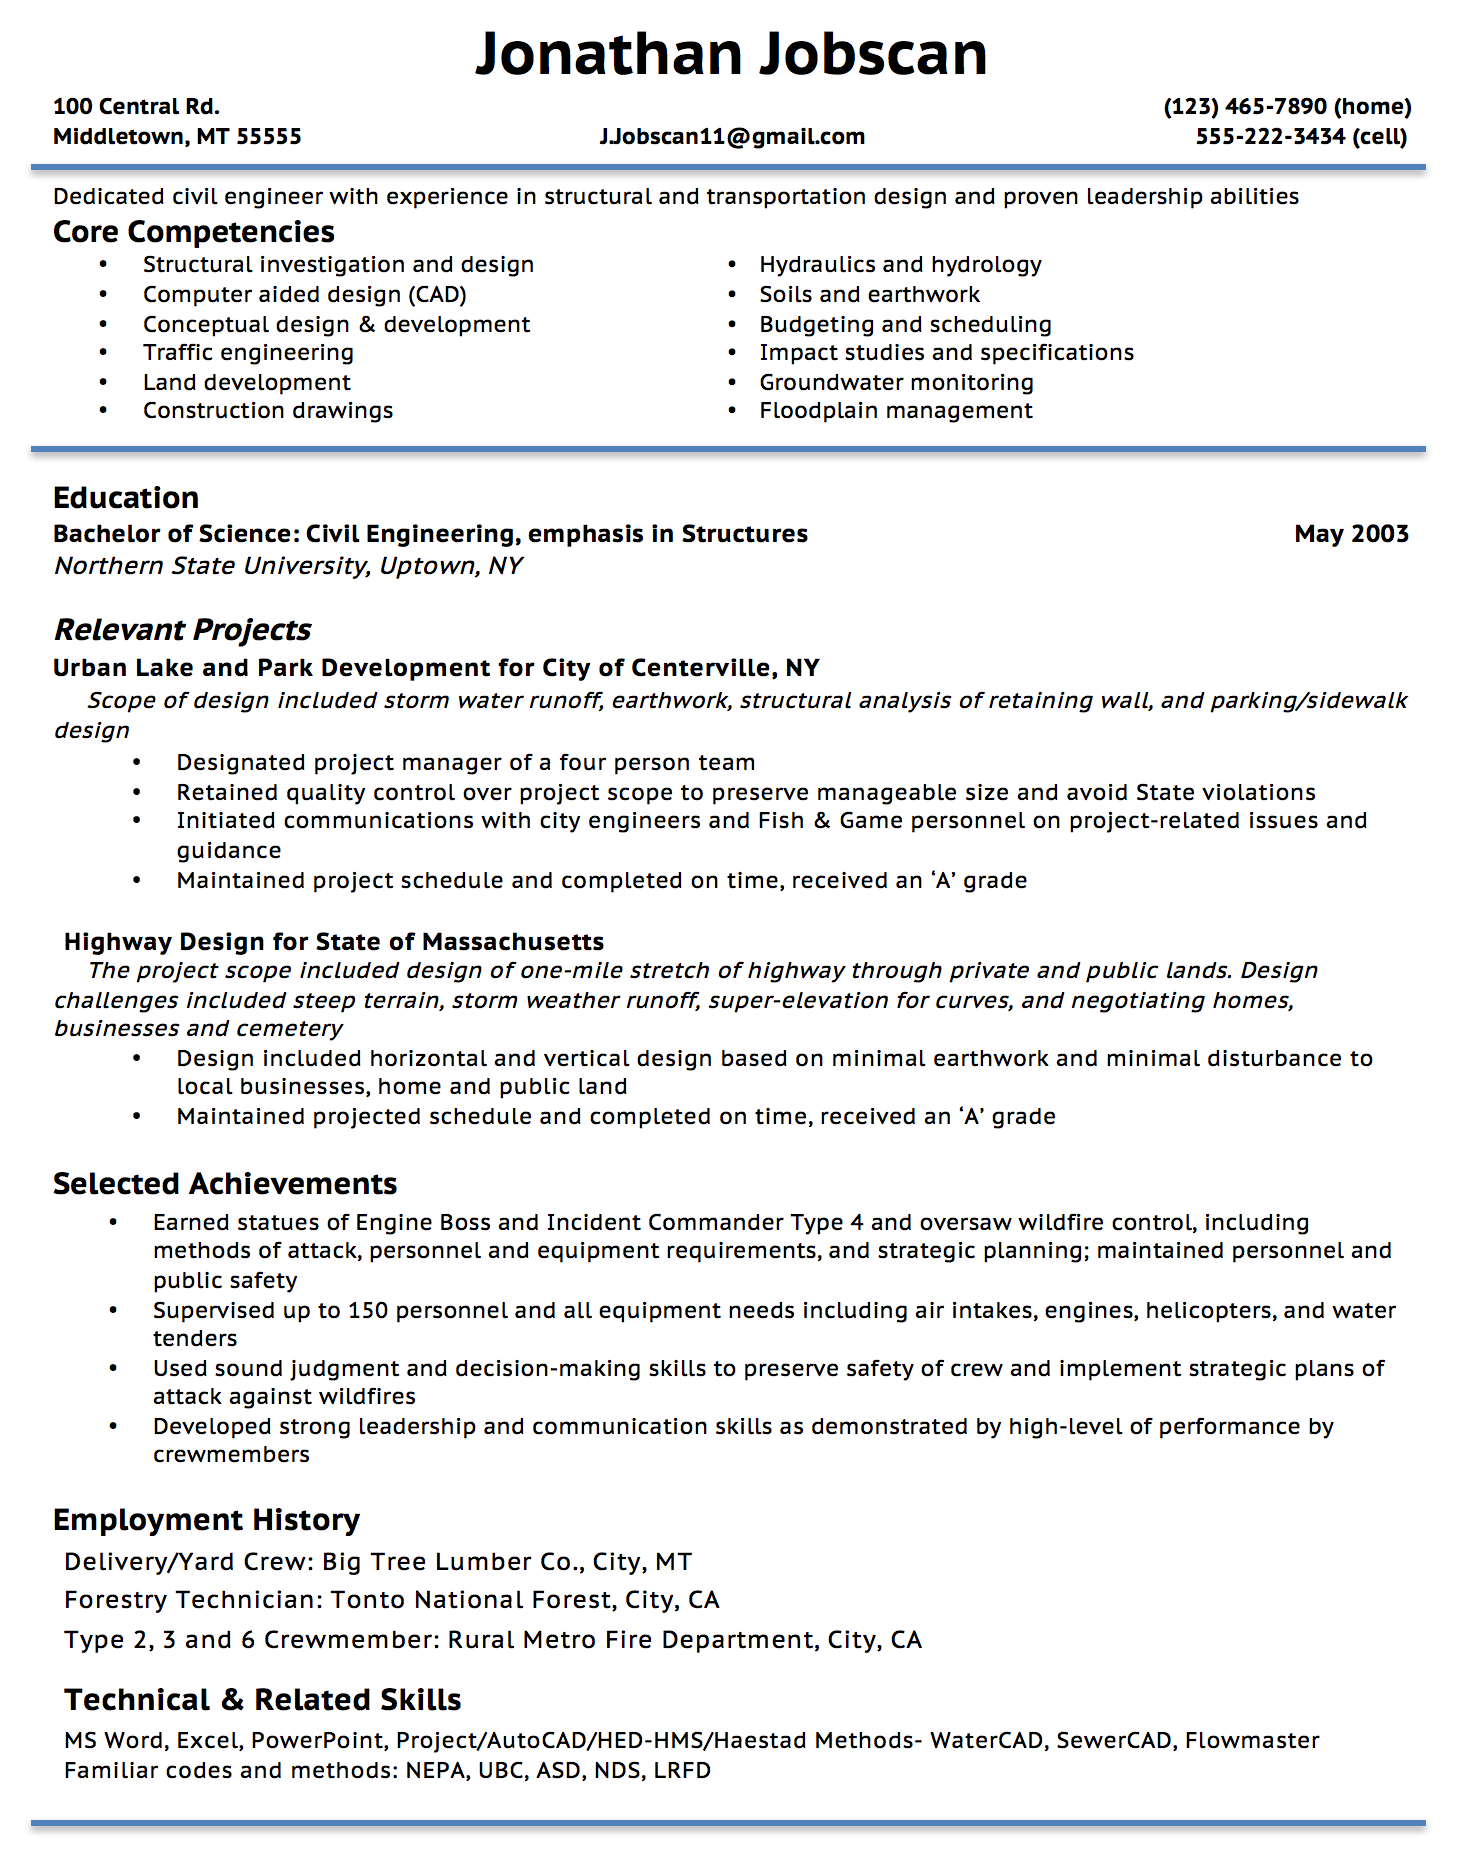 Opposenewapstandardsus  Unusual Resume Writing Guide  Jobscan With Remarkable Example Of A Functional Resume Format With Appealing Camp Counselor Job Description For Resume Also Winning Resume Examples In Addition How To Write A Resume For Graduate School And Free Professional Resume Builder As Well As Damn Good Resume Additionally Registered Nurse Resumes From Jobscanco With Opposenewapstandardsus  Remarkable Resume Writing Guide  Jobscan With Appealing Example Of A Functional Resume Format And Unusual Camp Counselor Job Description For Resume Also Winning Resume Examples In Addition How To Write A Resume For Graduate School From Jobscanco